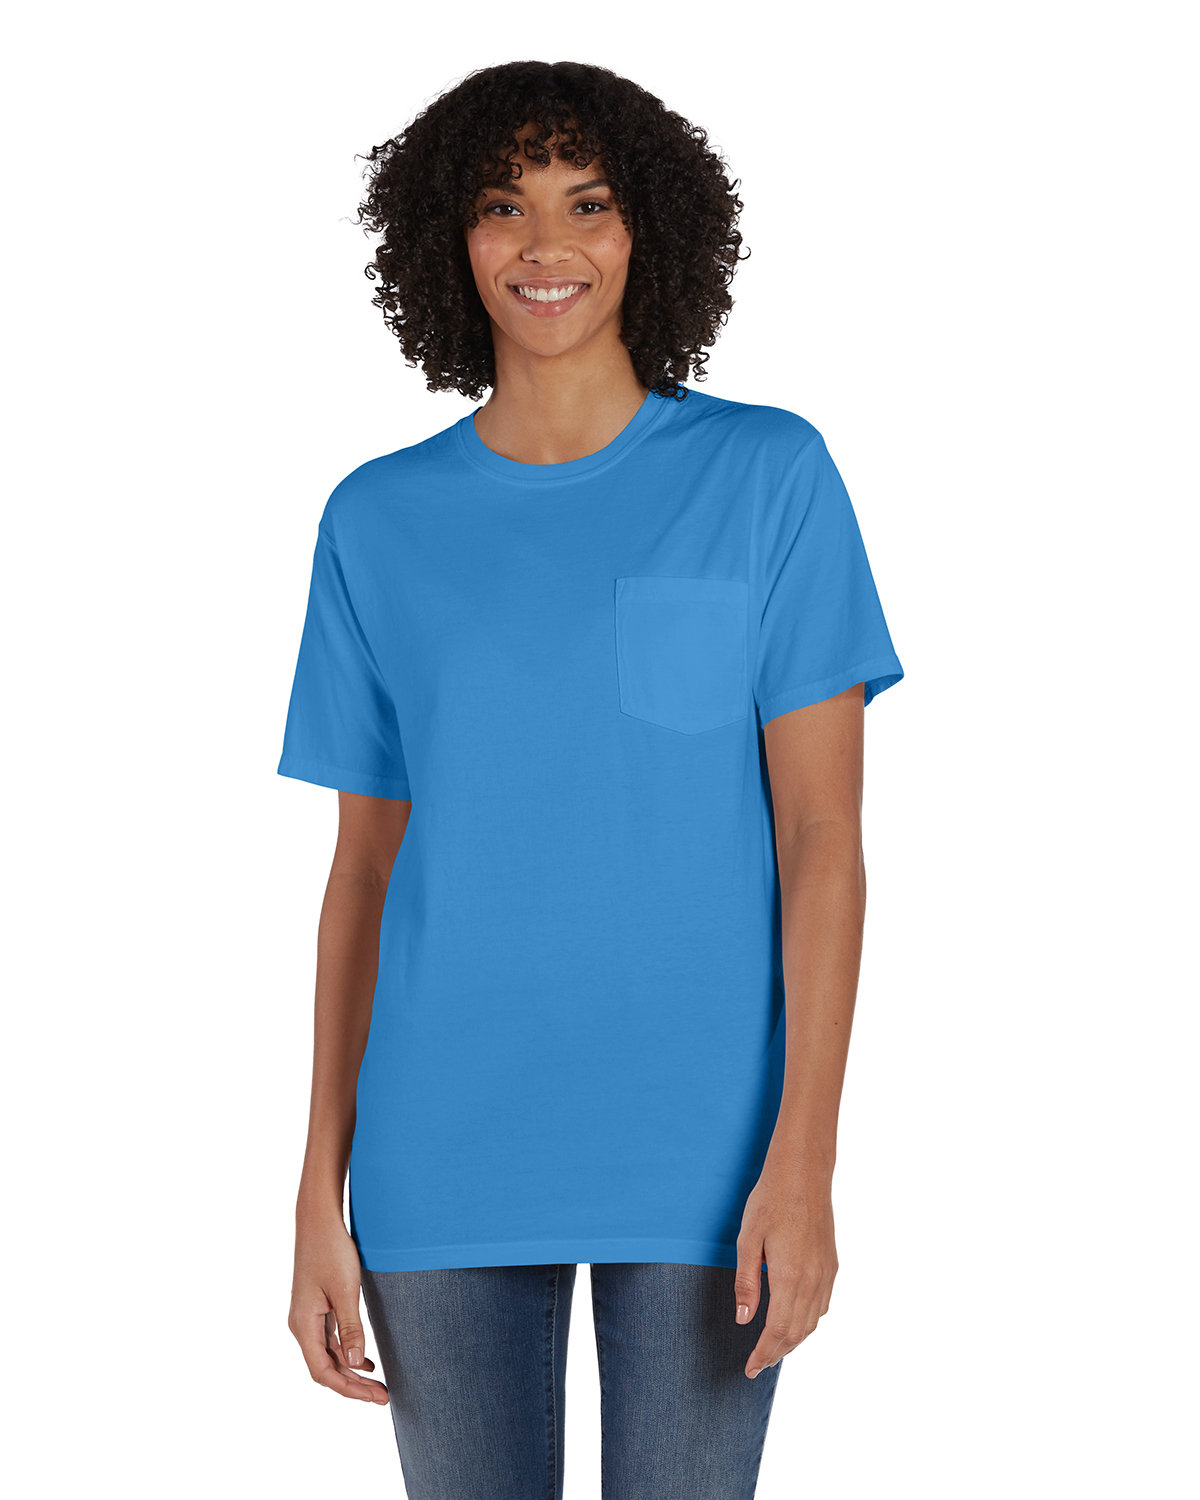 ComfortWash by Hanes Unisex 5.5 oz., 100% Ringspun Cotton Garment-Dyed T-Shirt with Pocket SUMMER SKY